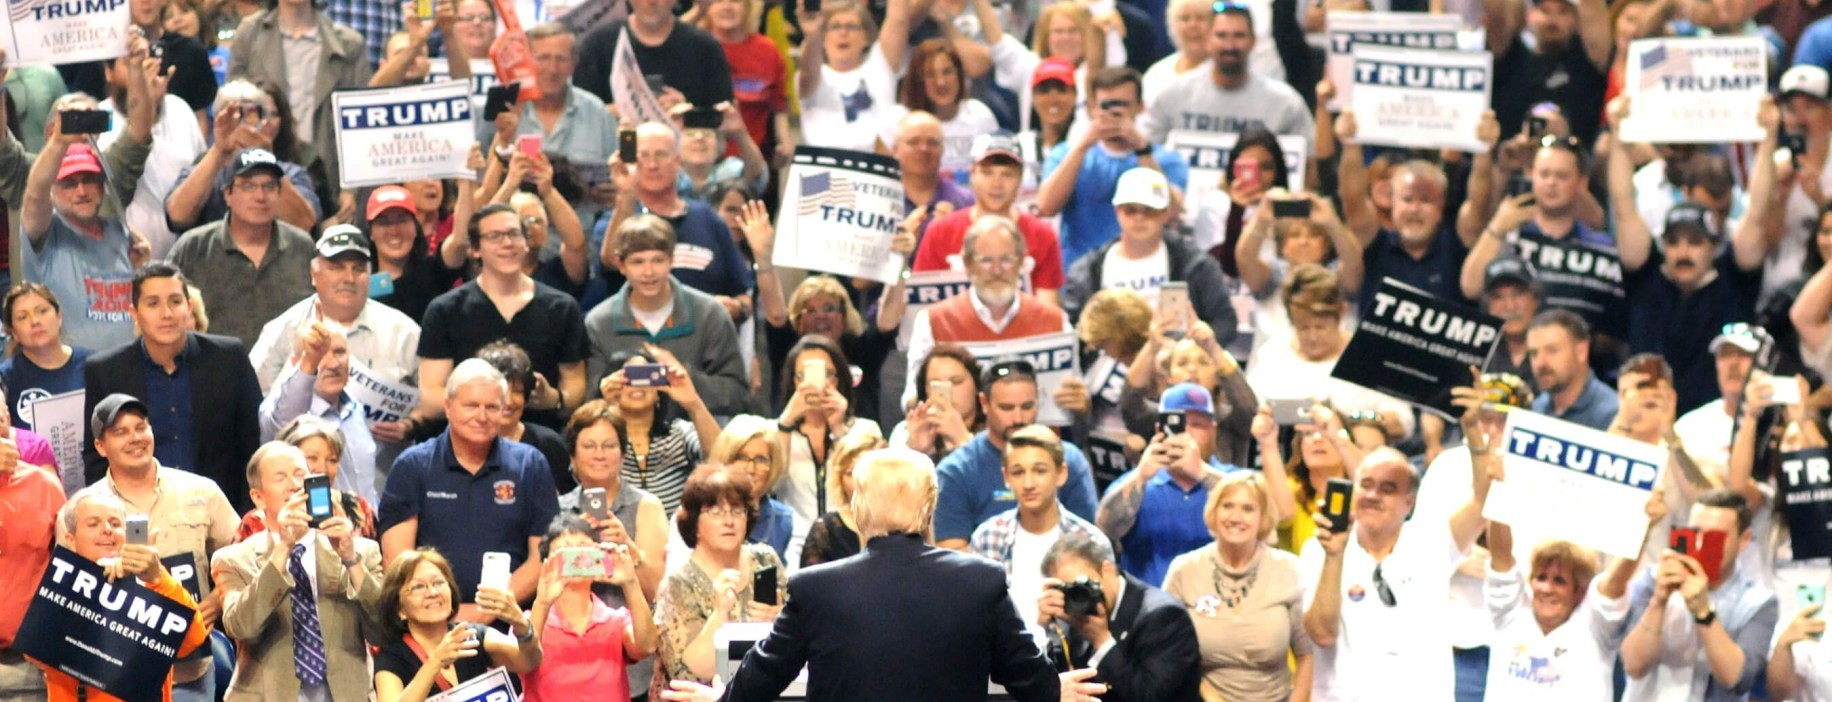 """PART 2 - CONTINUED: America Warned Is Unprepared For Q & Trump's Cataclysmic Destruction Of """"Deep State"""" - Page 21 Trump-rally-pennsylvania"""